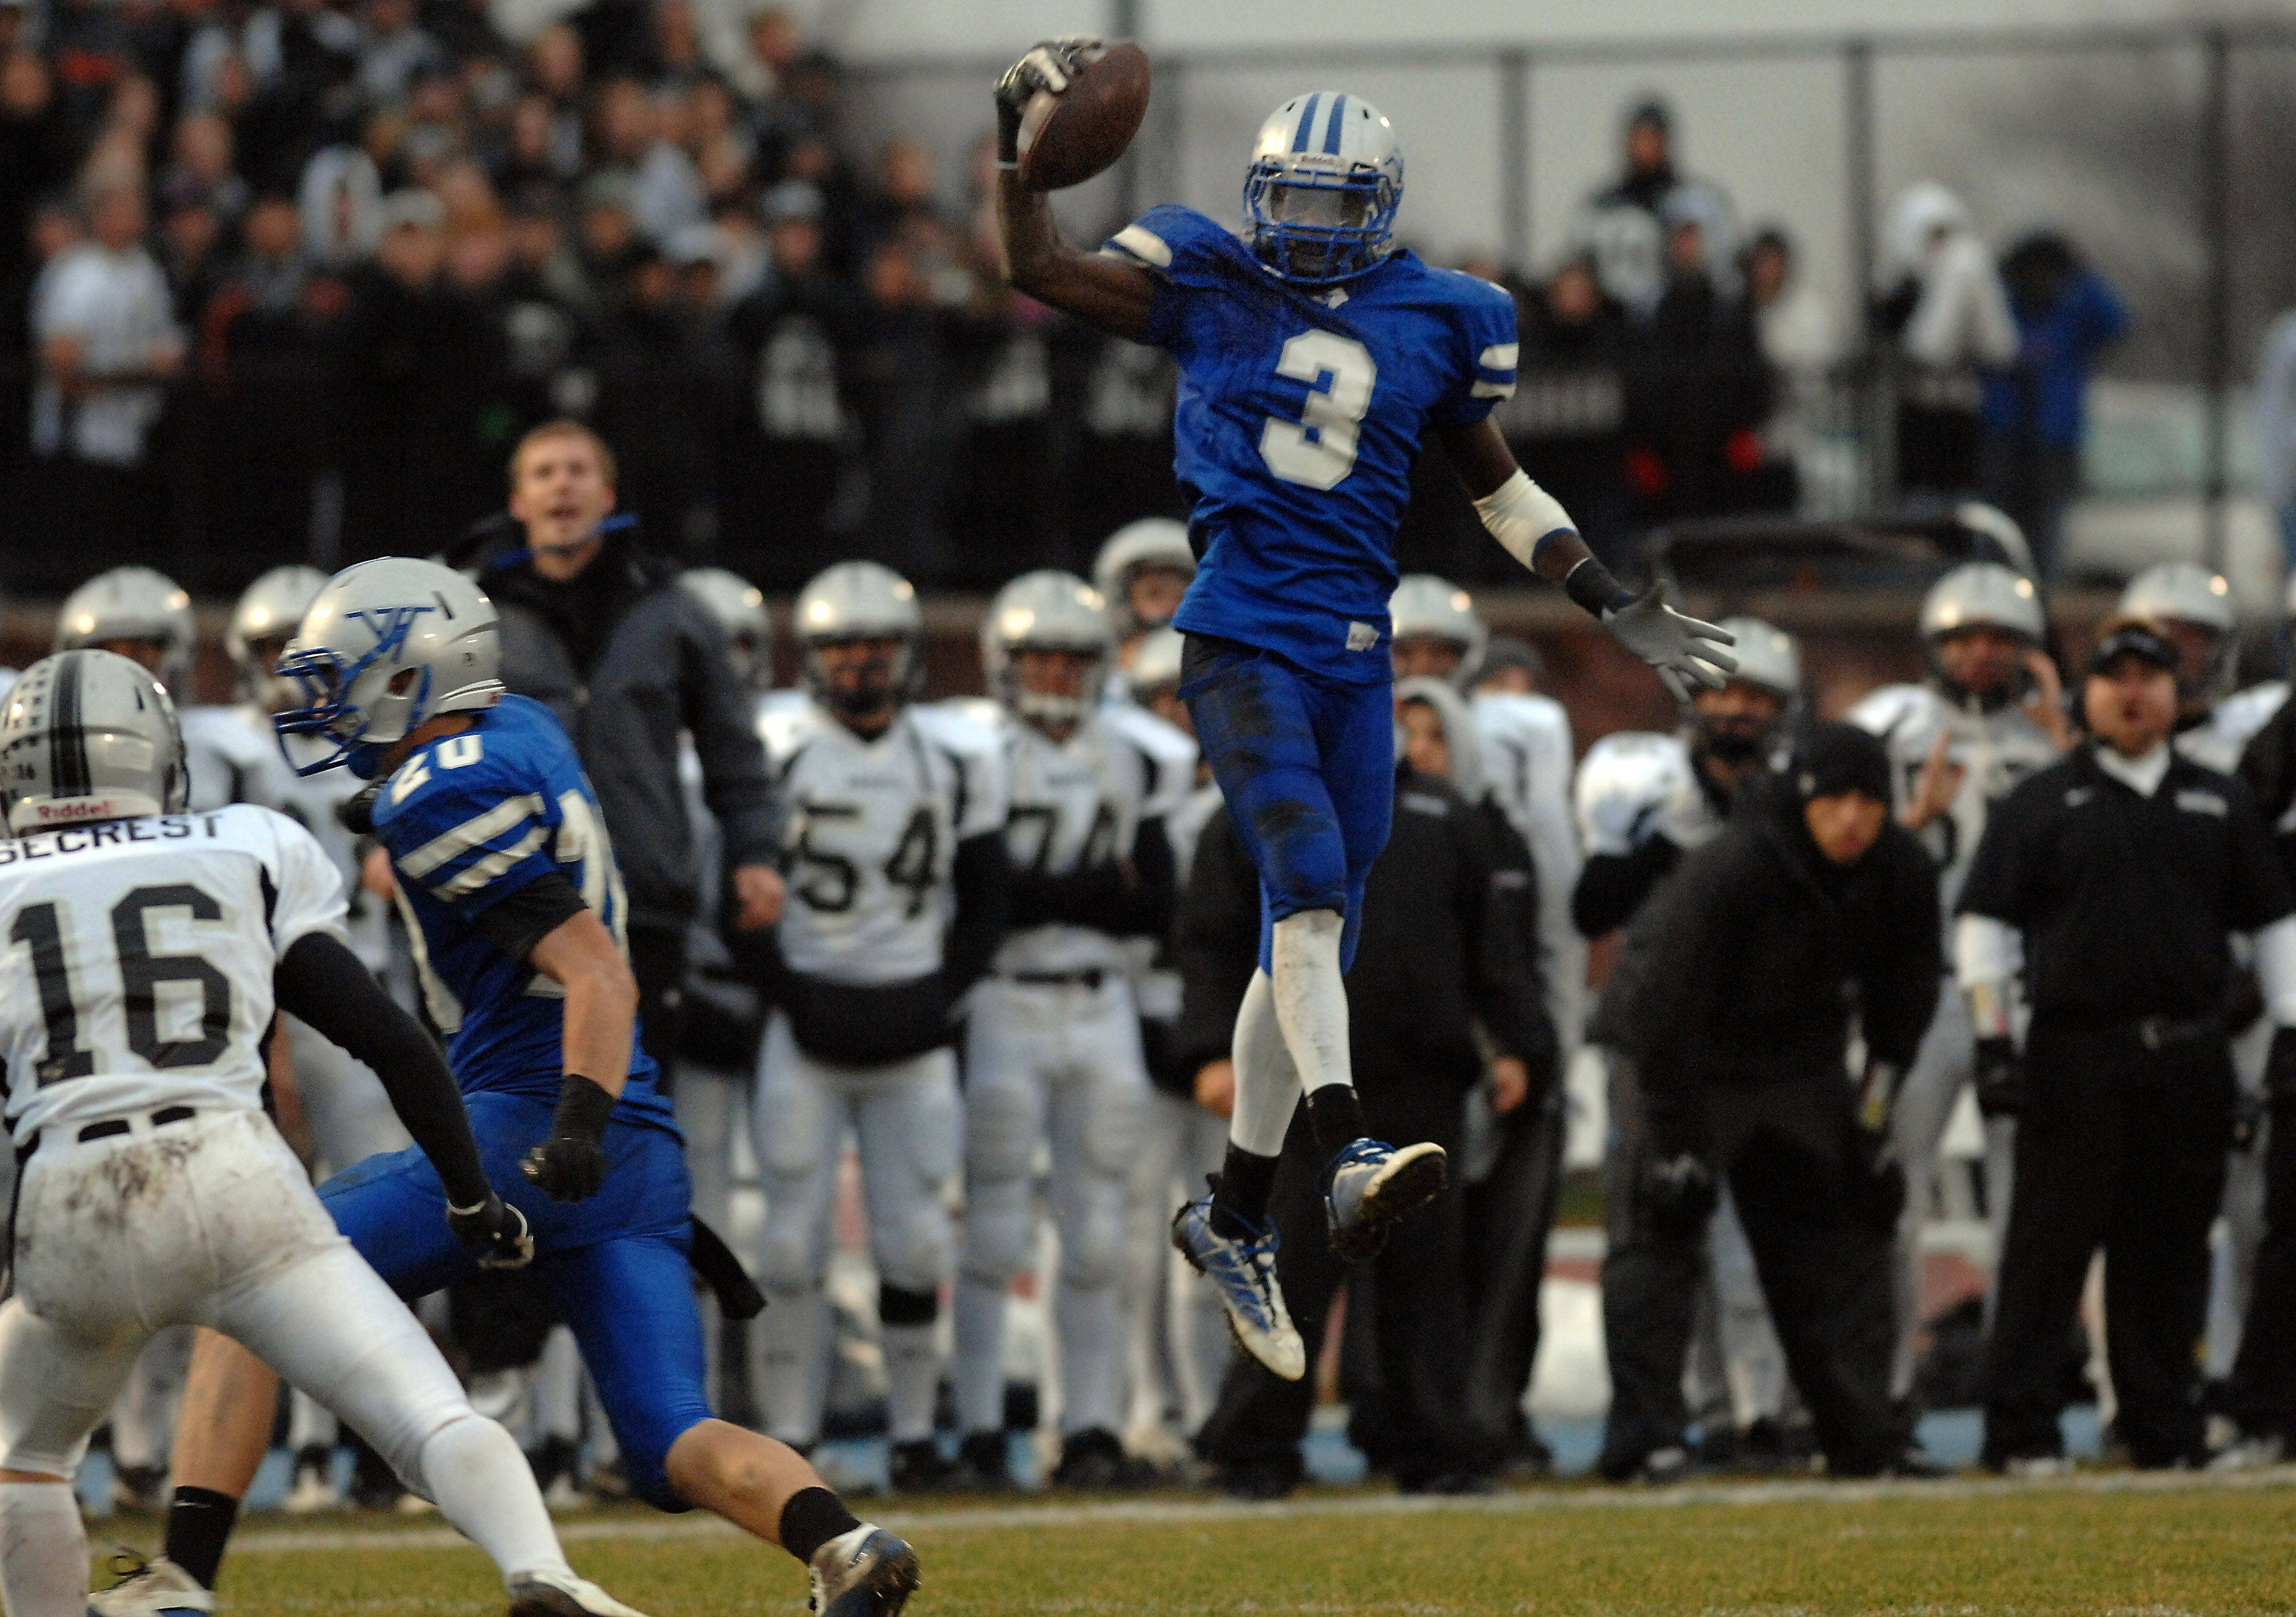 Vernon Hills DaVaris Daniels goes airborne to make a one-handed catch Saturday.